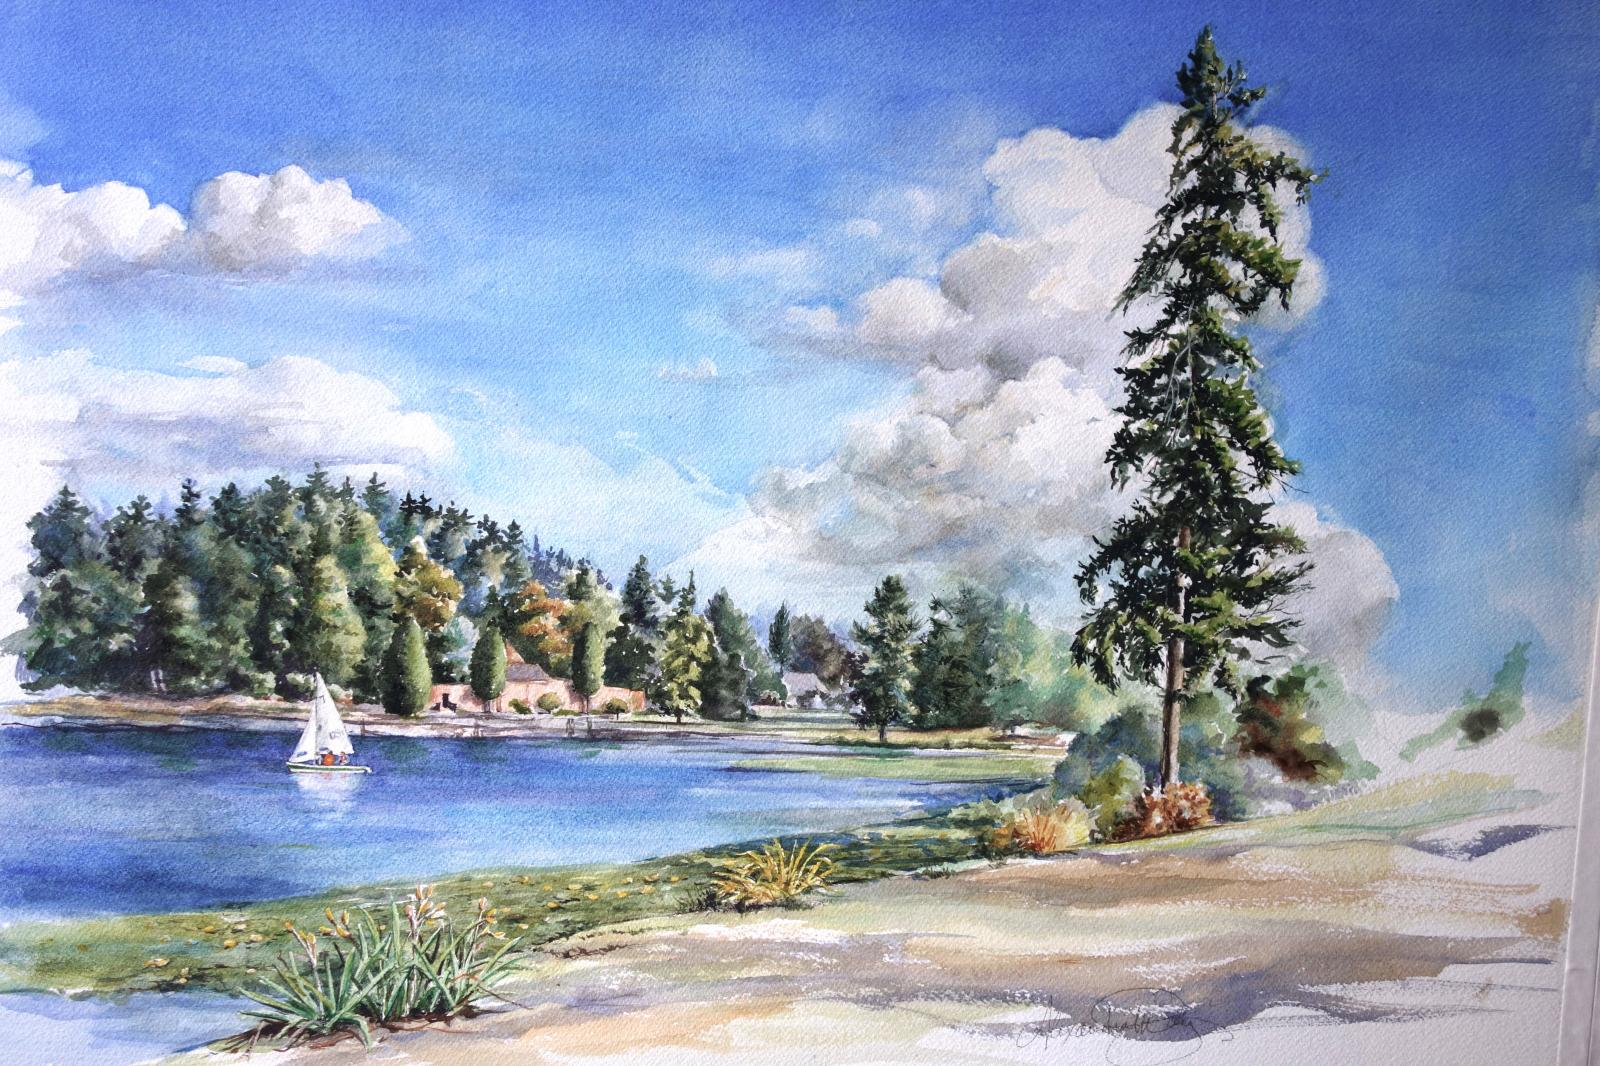 A view of Seward Park and Lake Washington by Alexandra Day